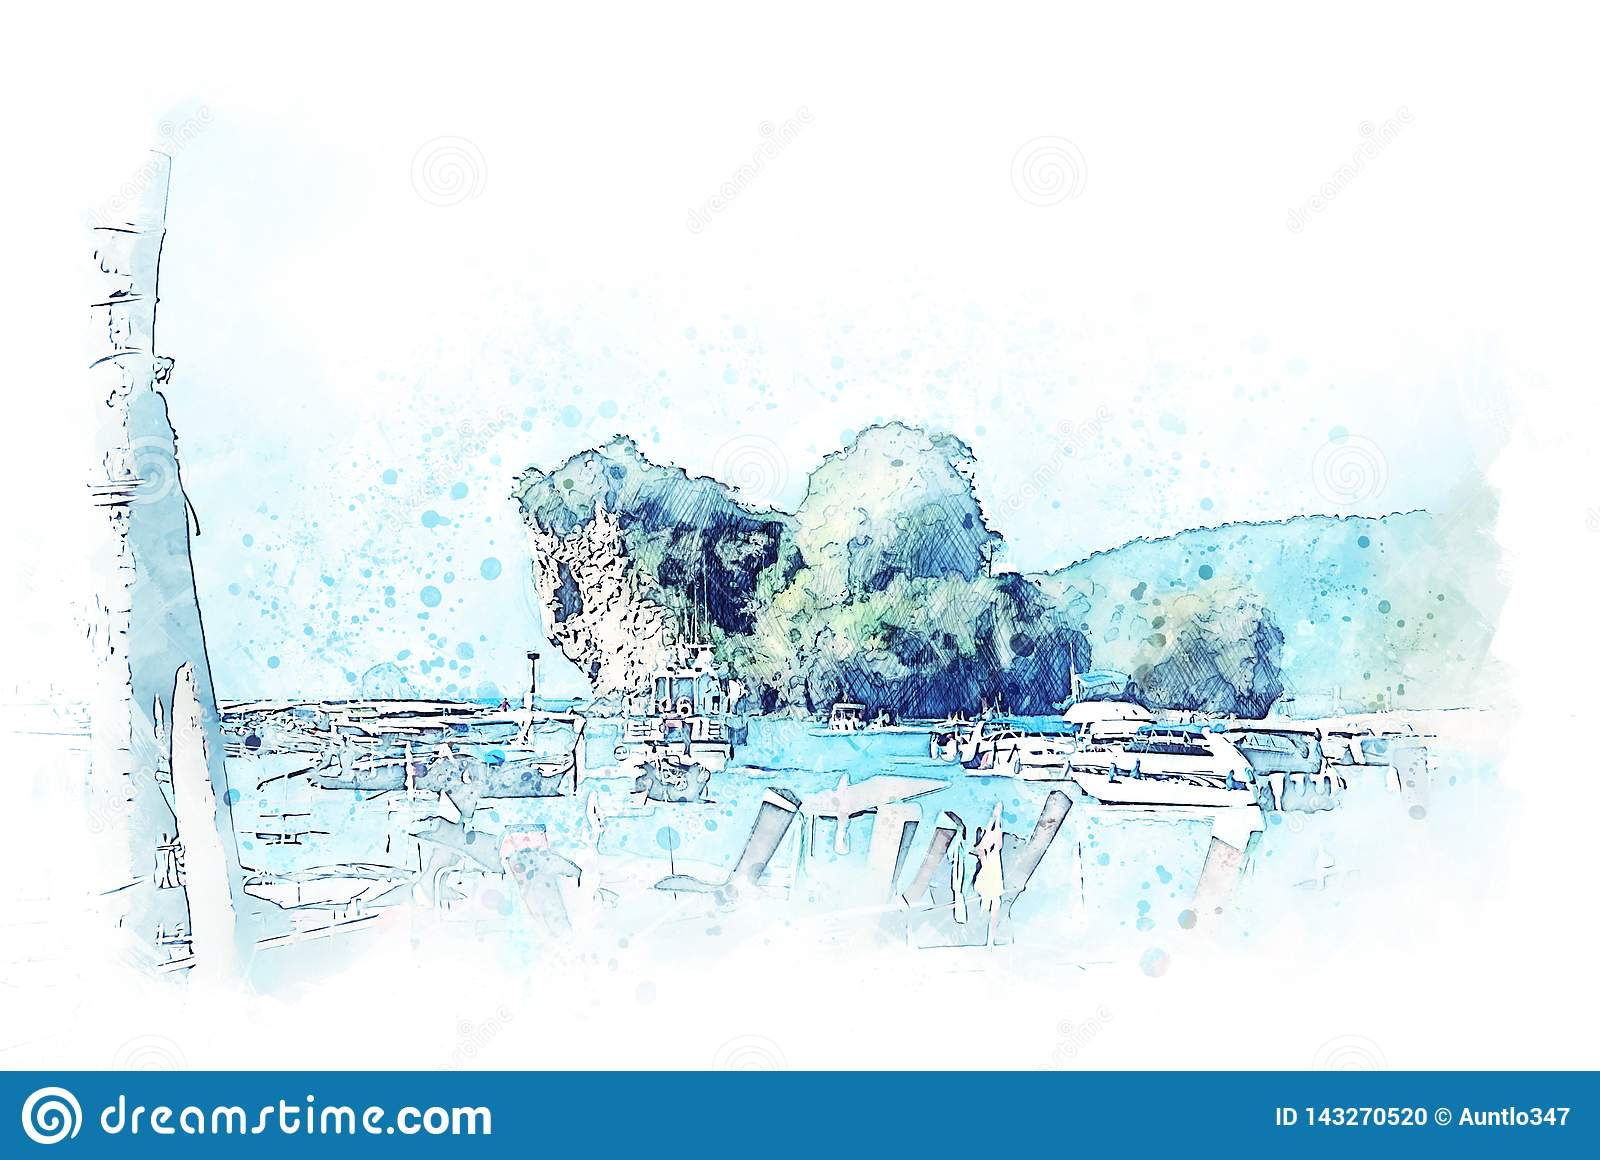 Abstract colorful mountain range and tree landscape watercolor illustration painting